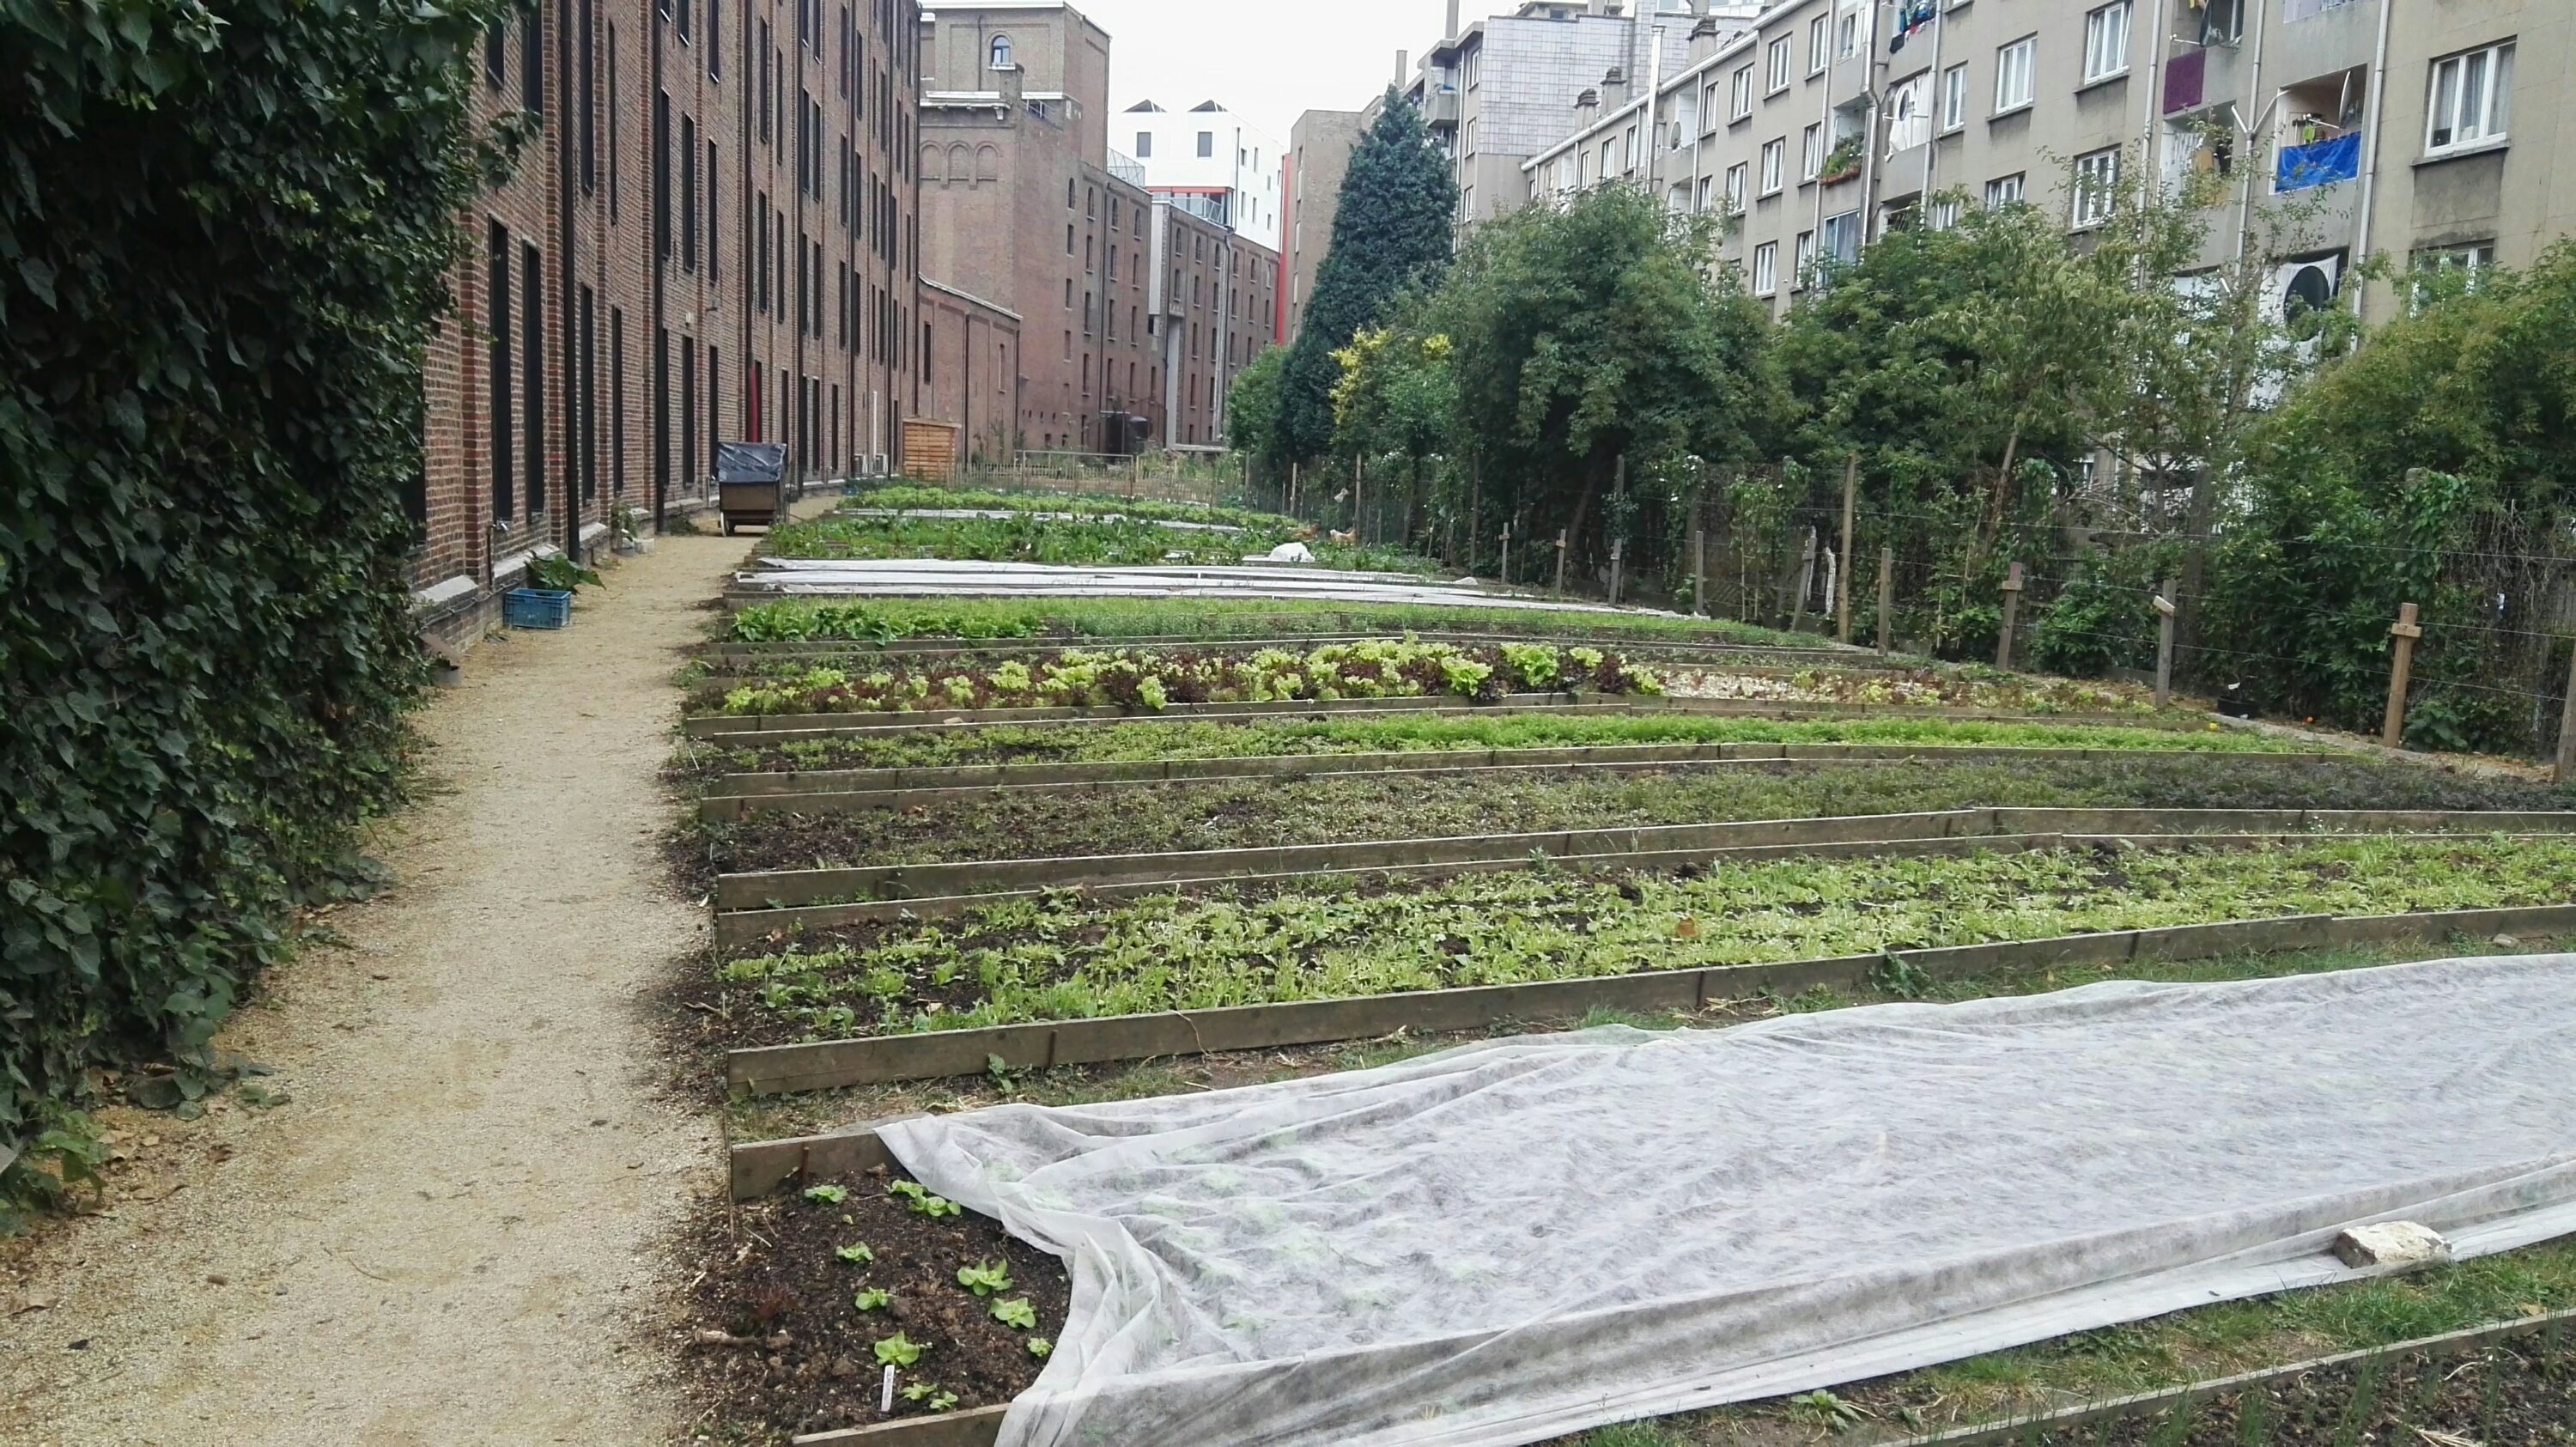 Brussels Community Garden – A regenerative food system